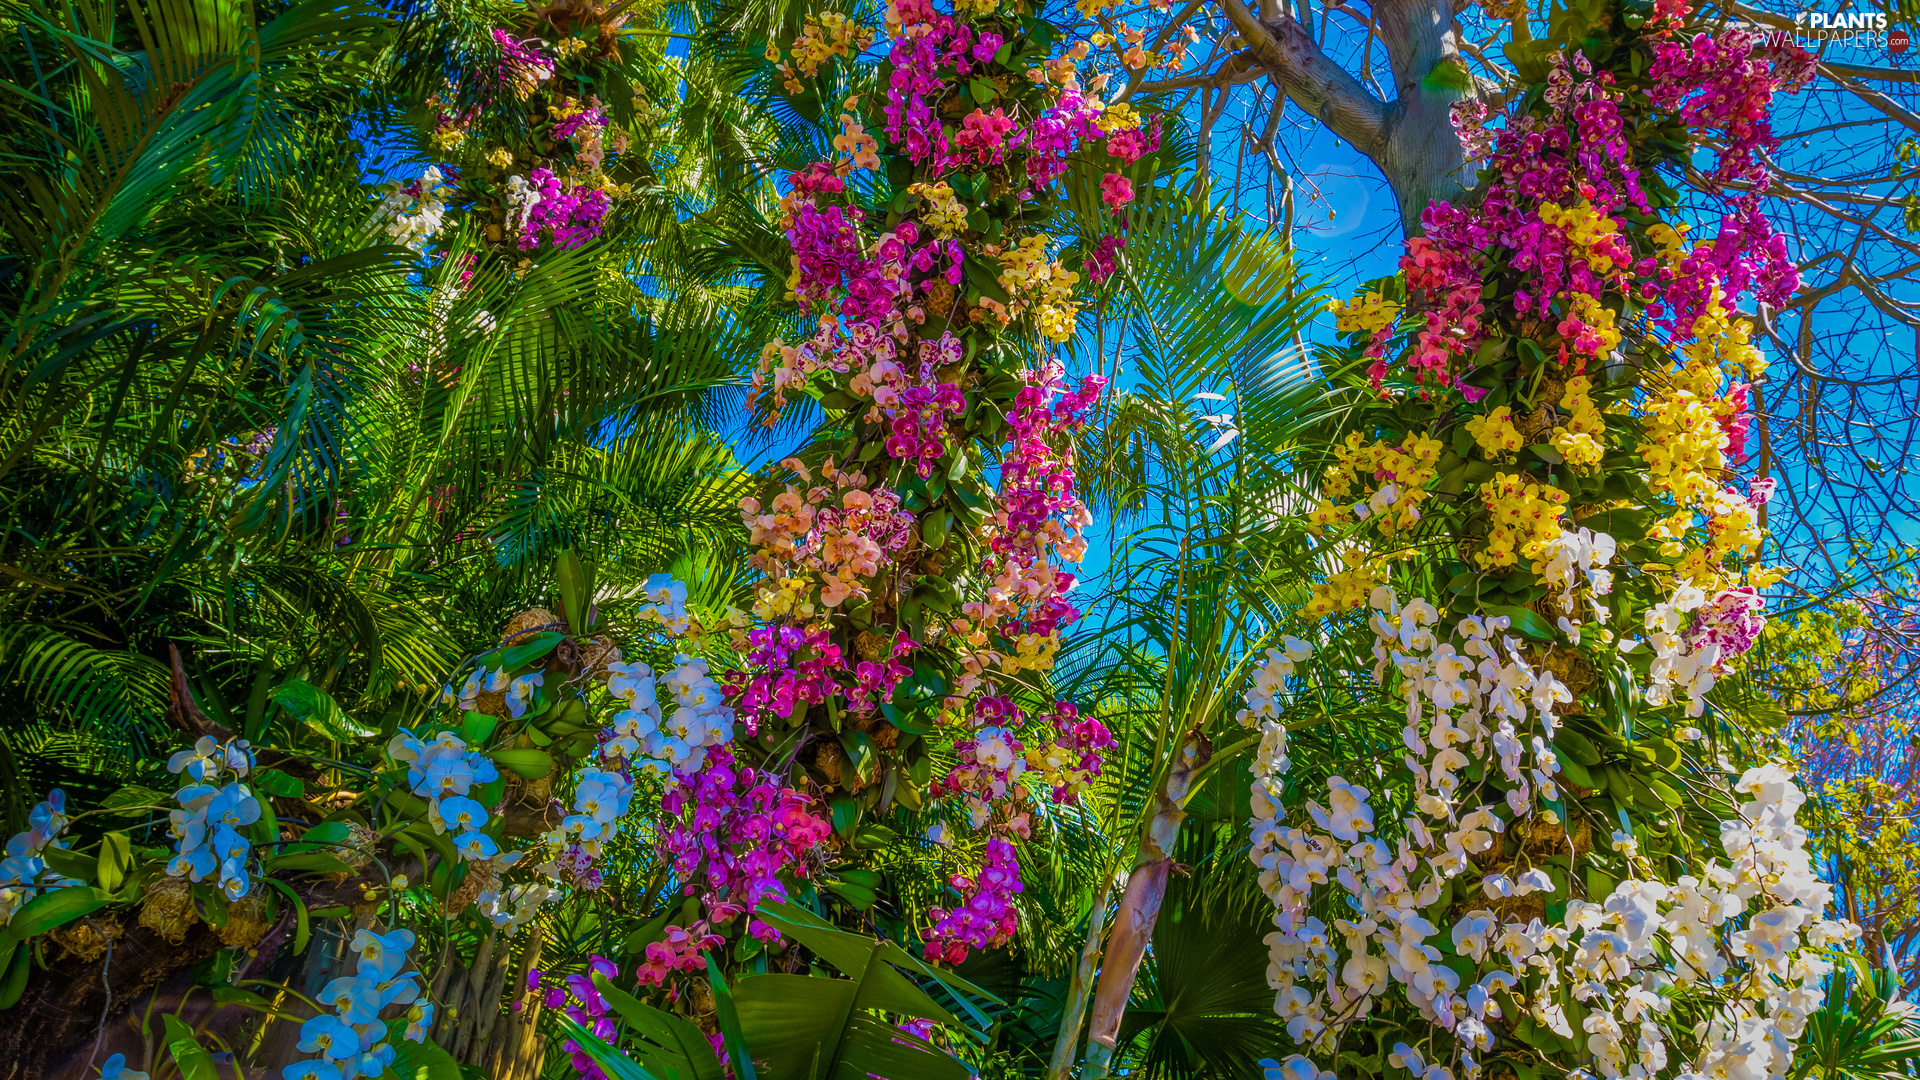 viewes, Palms, orchids, trees, Flowers